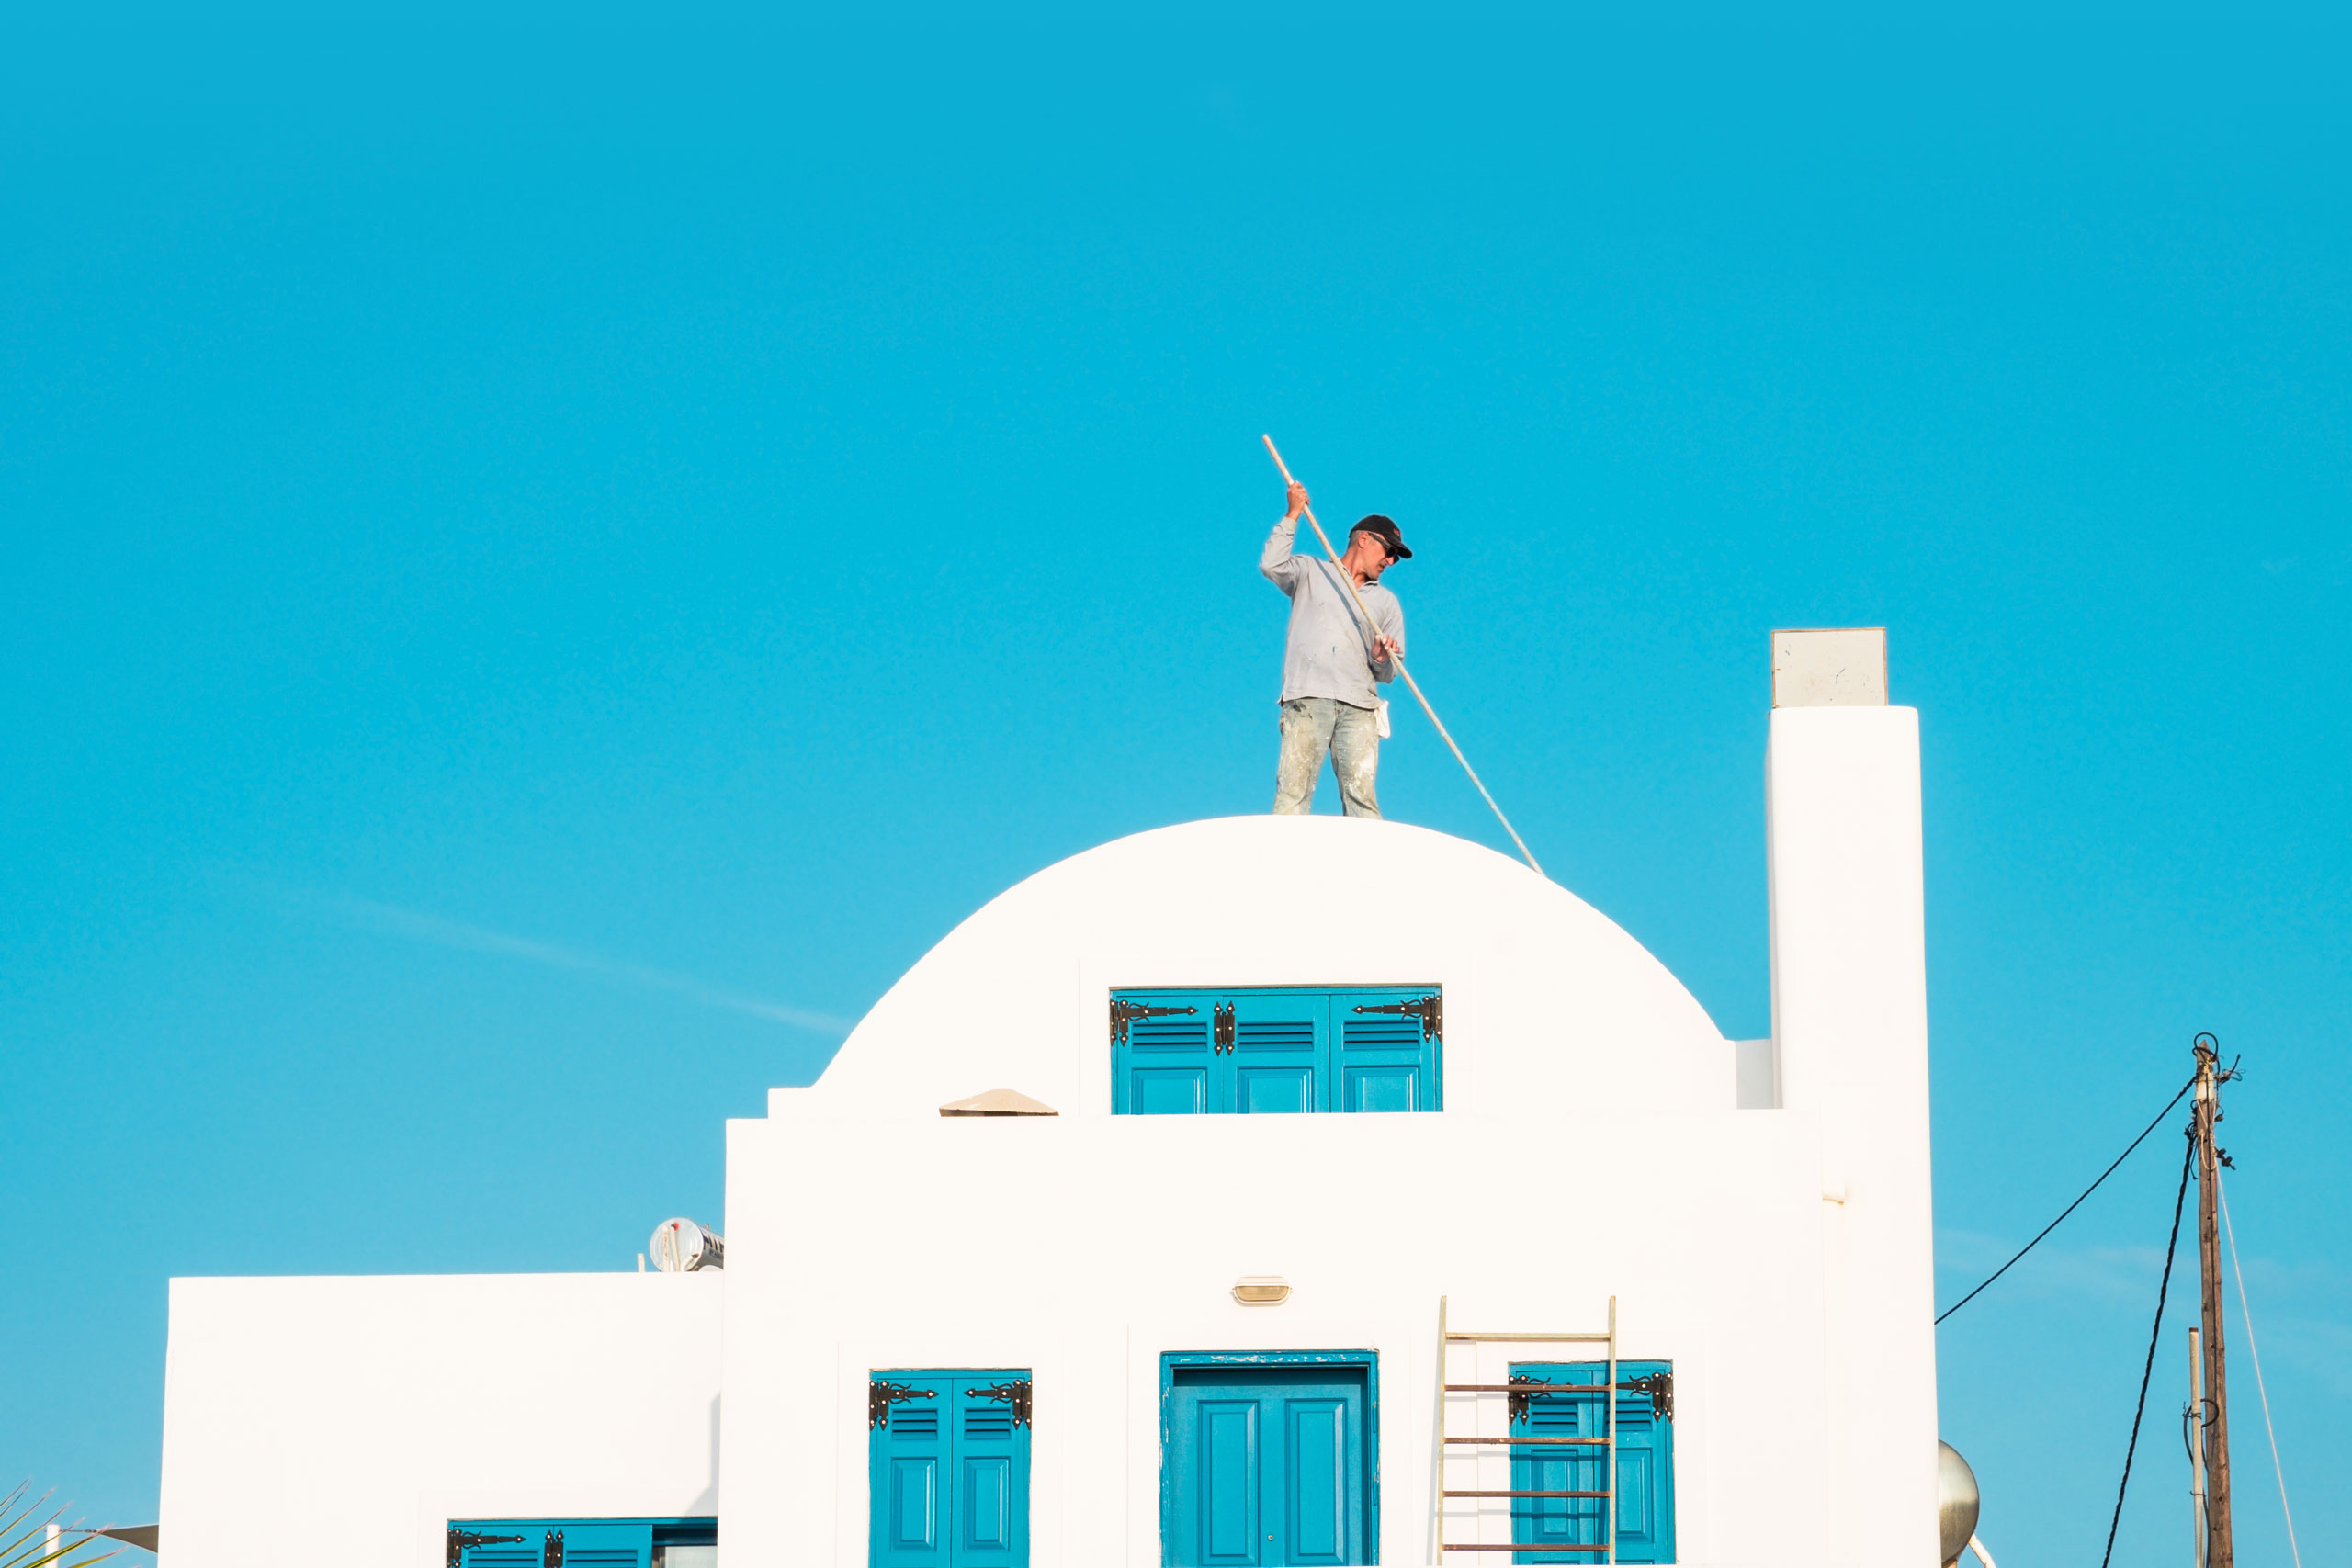 A man painting the roof in Santorini, Greece. Photo by Jari Anttonen.